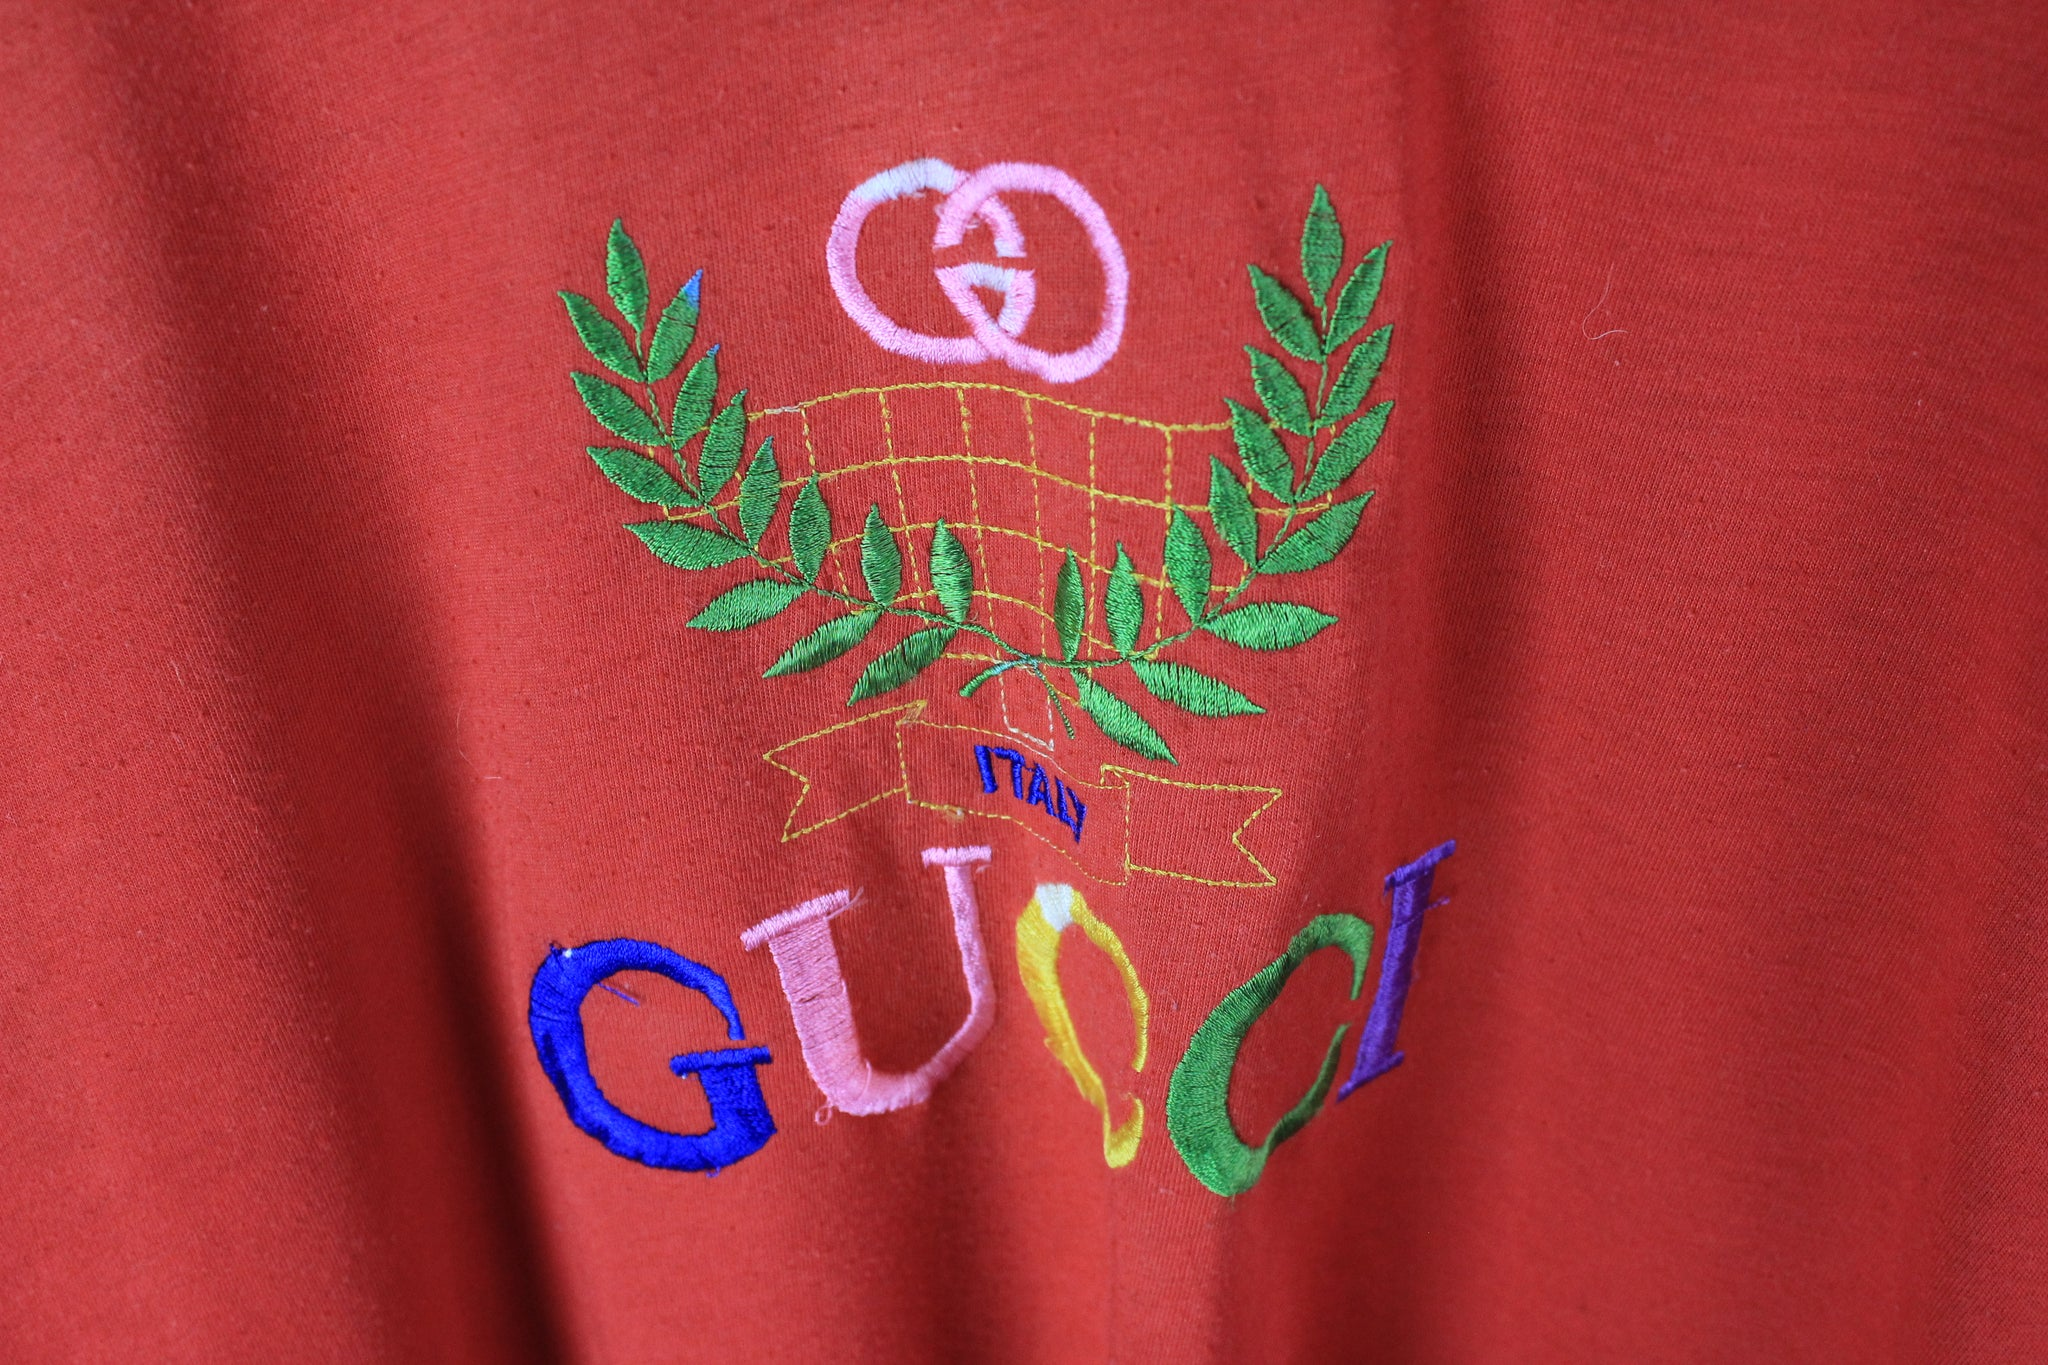 Vintage Gucci Bootleg T-Shirt Women's Medium